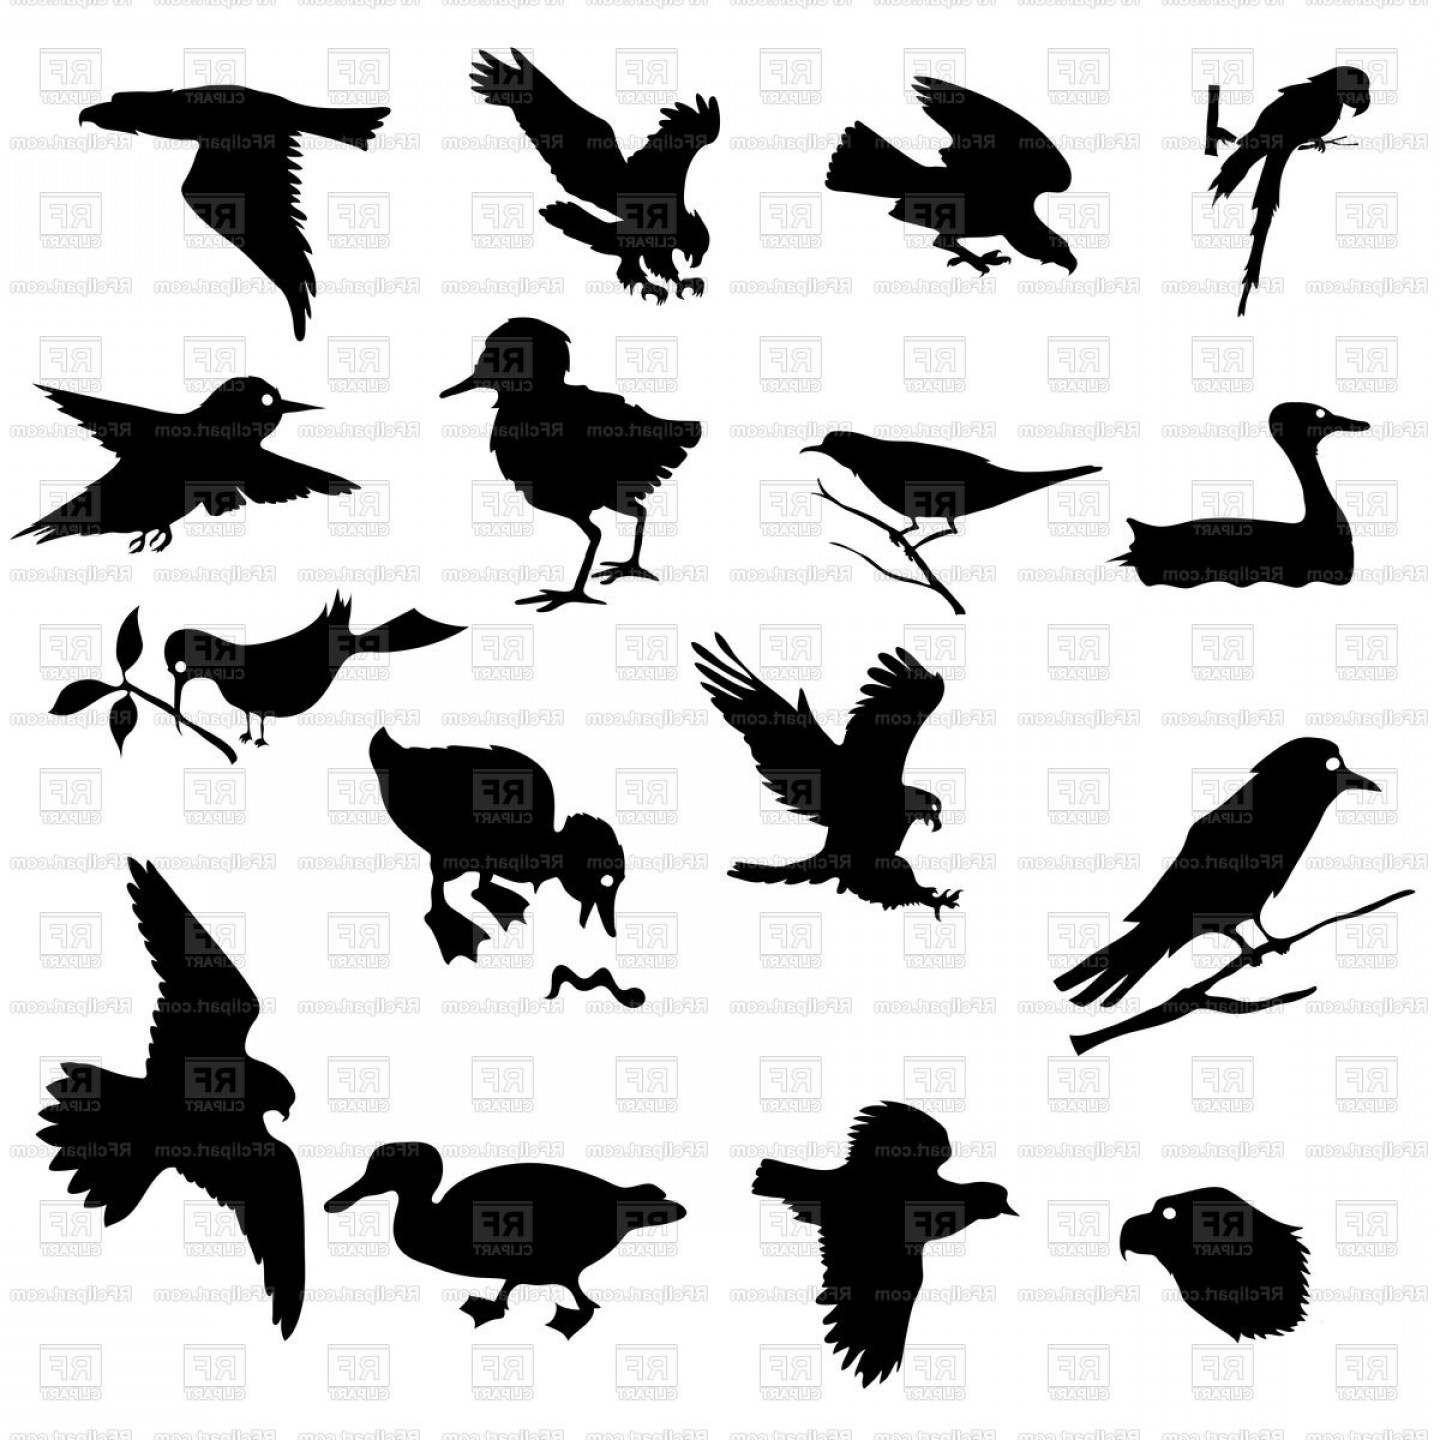 Poultry Vector Art: Silhouettes Of Birds And Poultry Vector Clipart